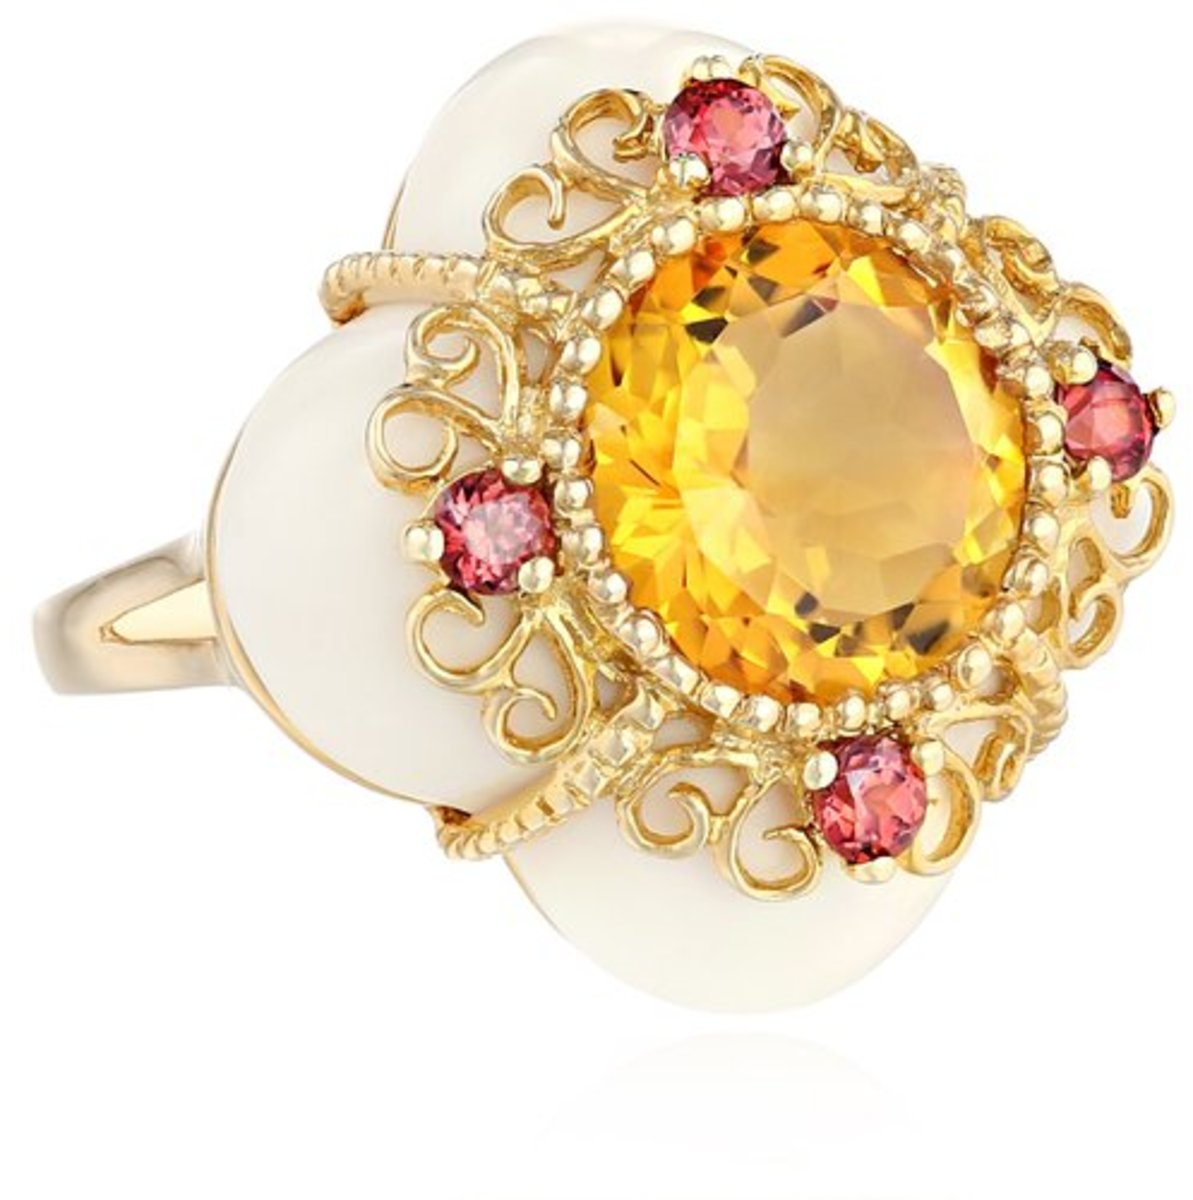 November Birthstone Citrine and Topaz Gift Ideas for November Born Girls